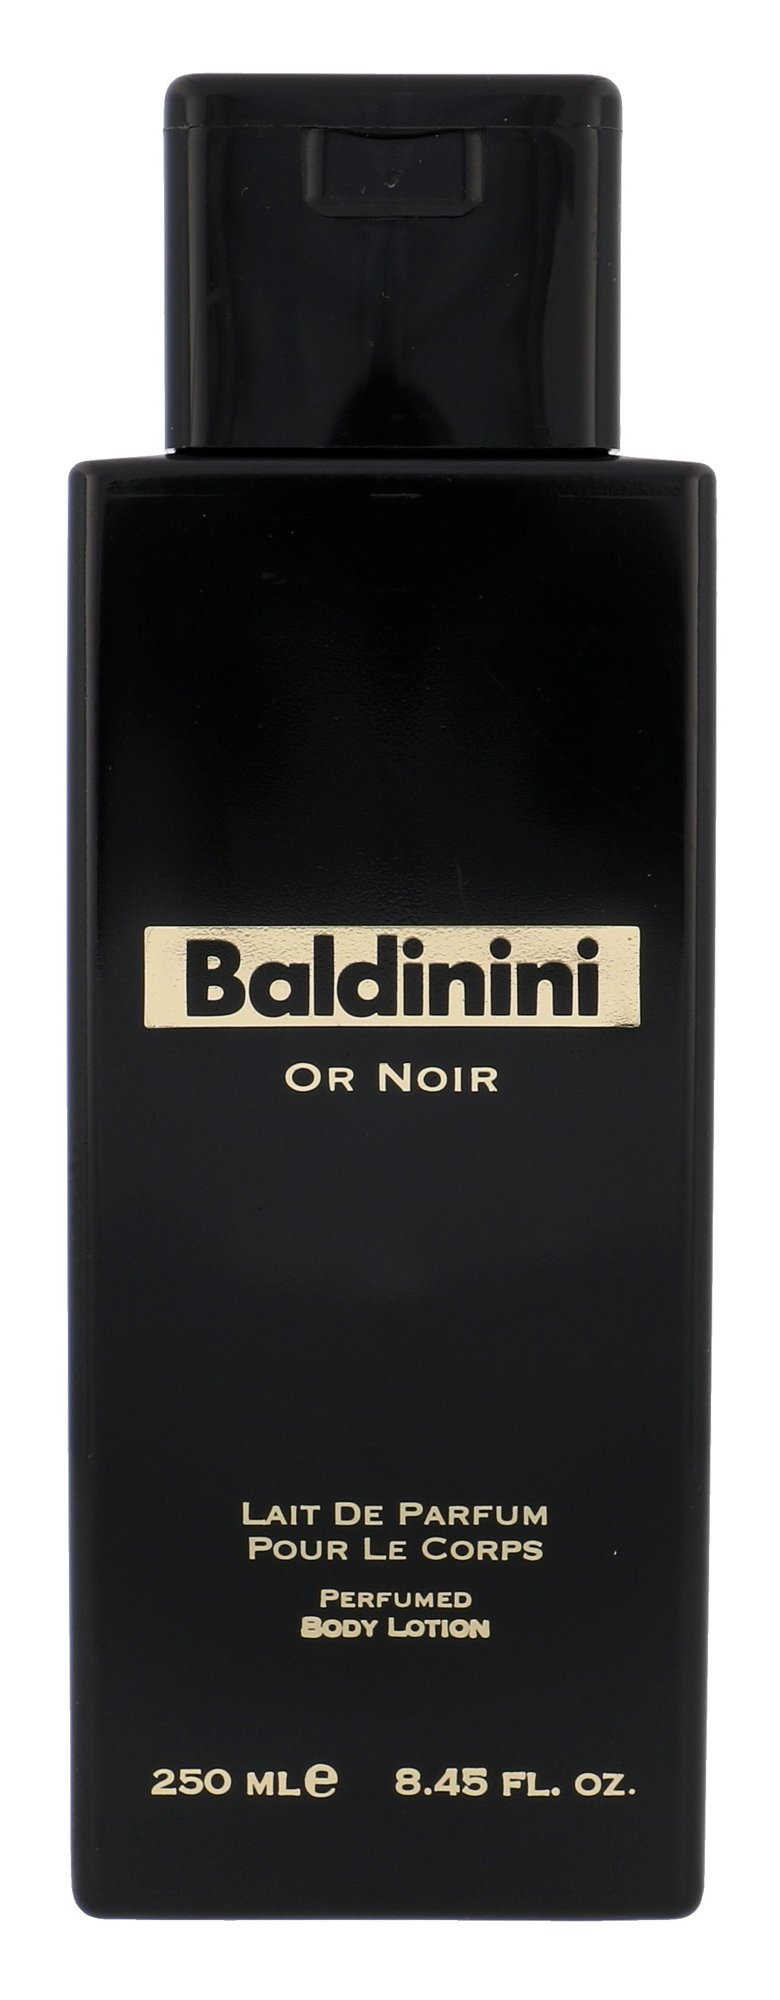 Baldinini Or Noir Body Lotion 250ml